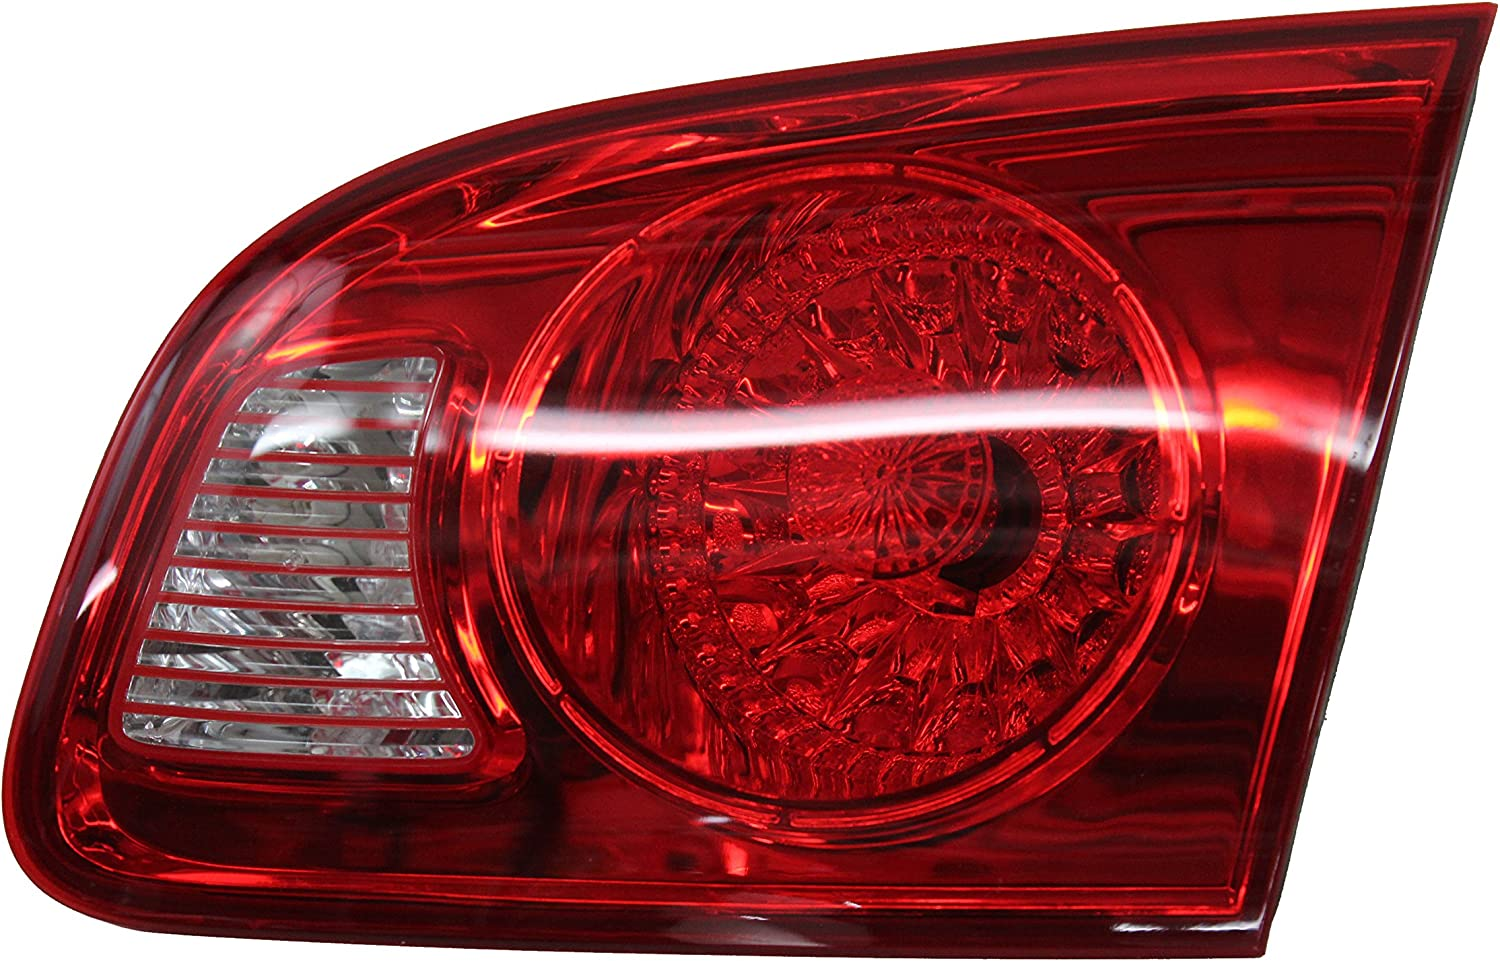 Genuine Hyundai Parts 92402-2D200 Passenger Side Taillight Assembly